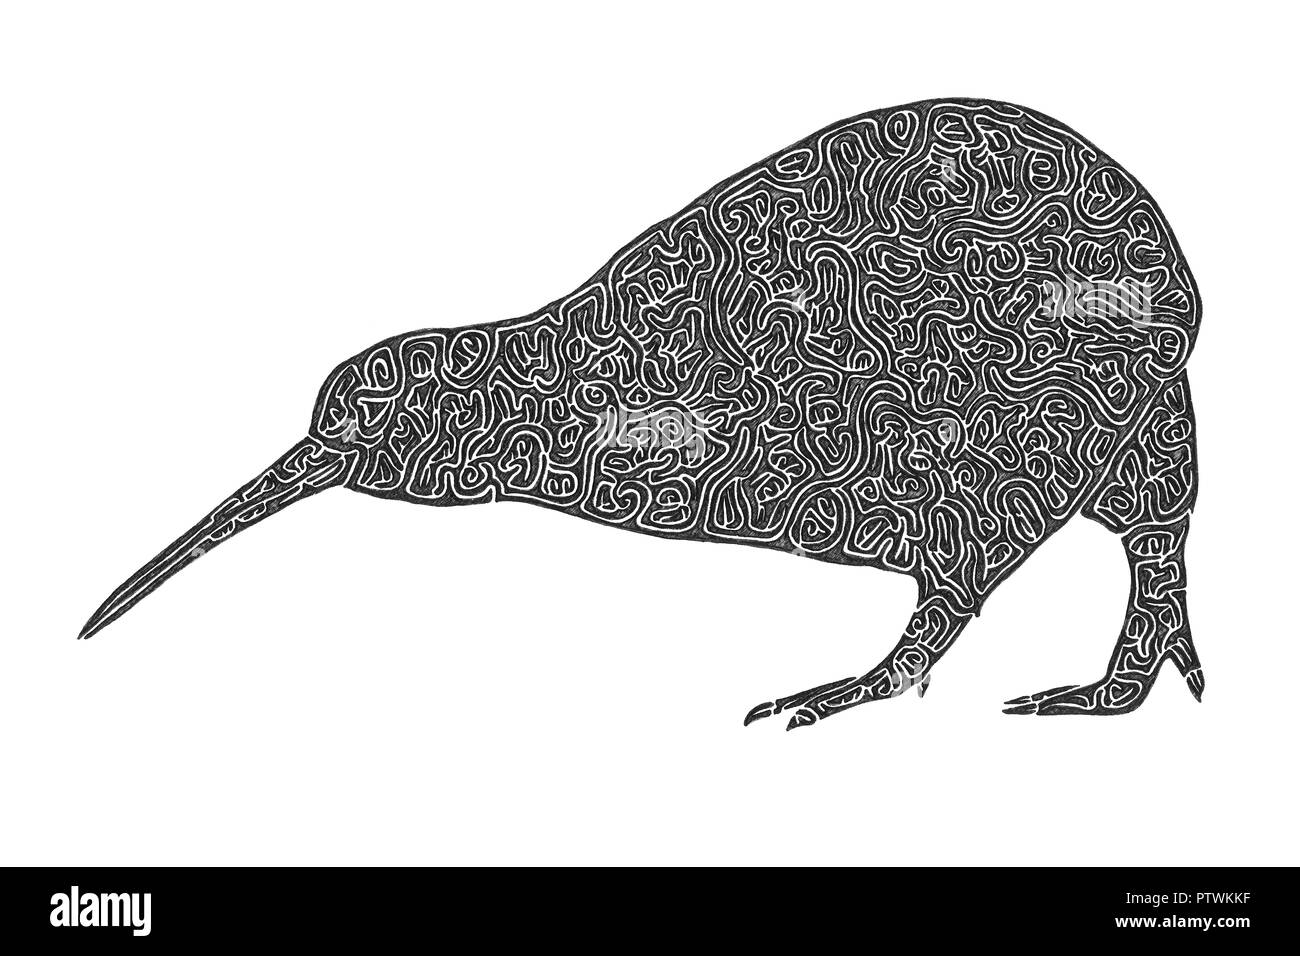 Illustration Drawing Of The Nocturnal And Flightless Kiwi The